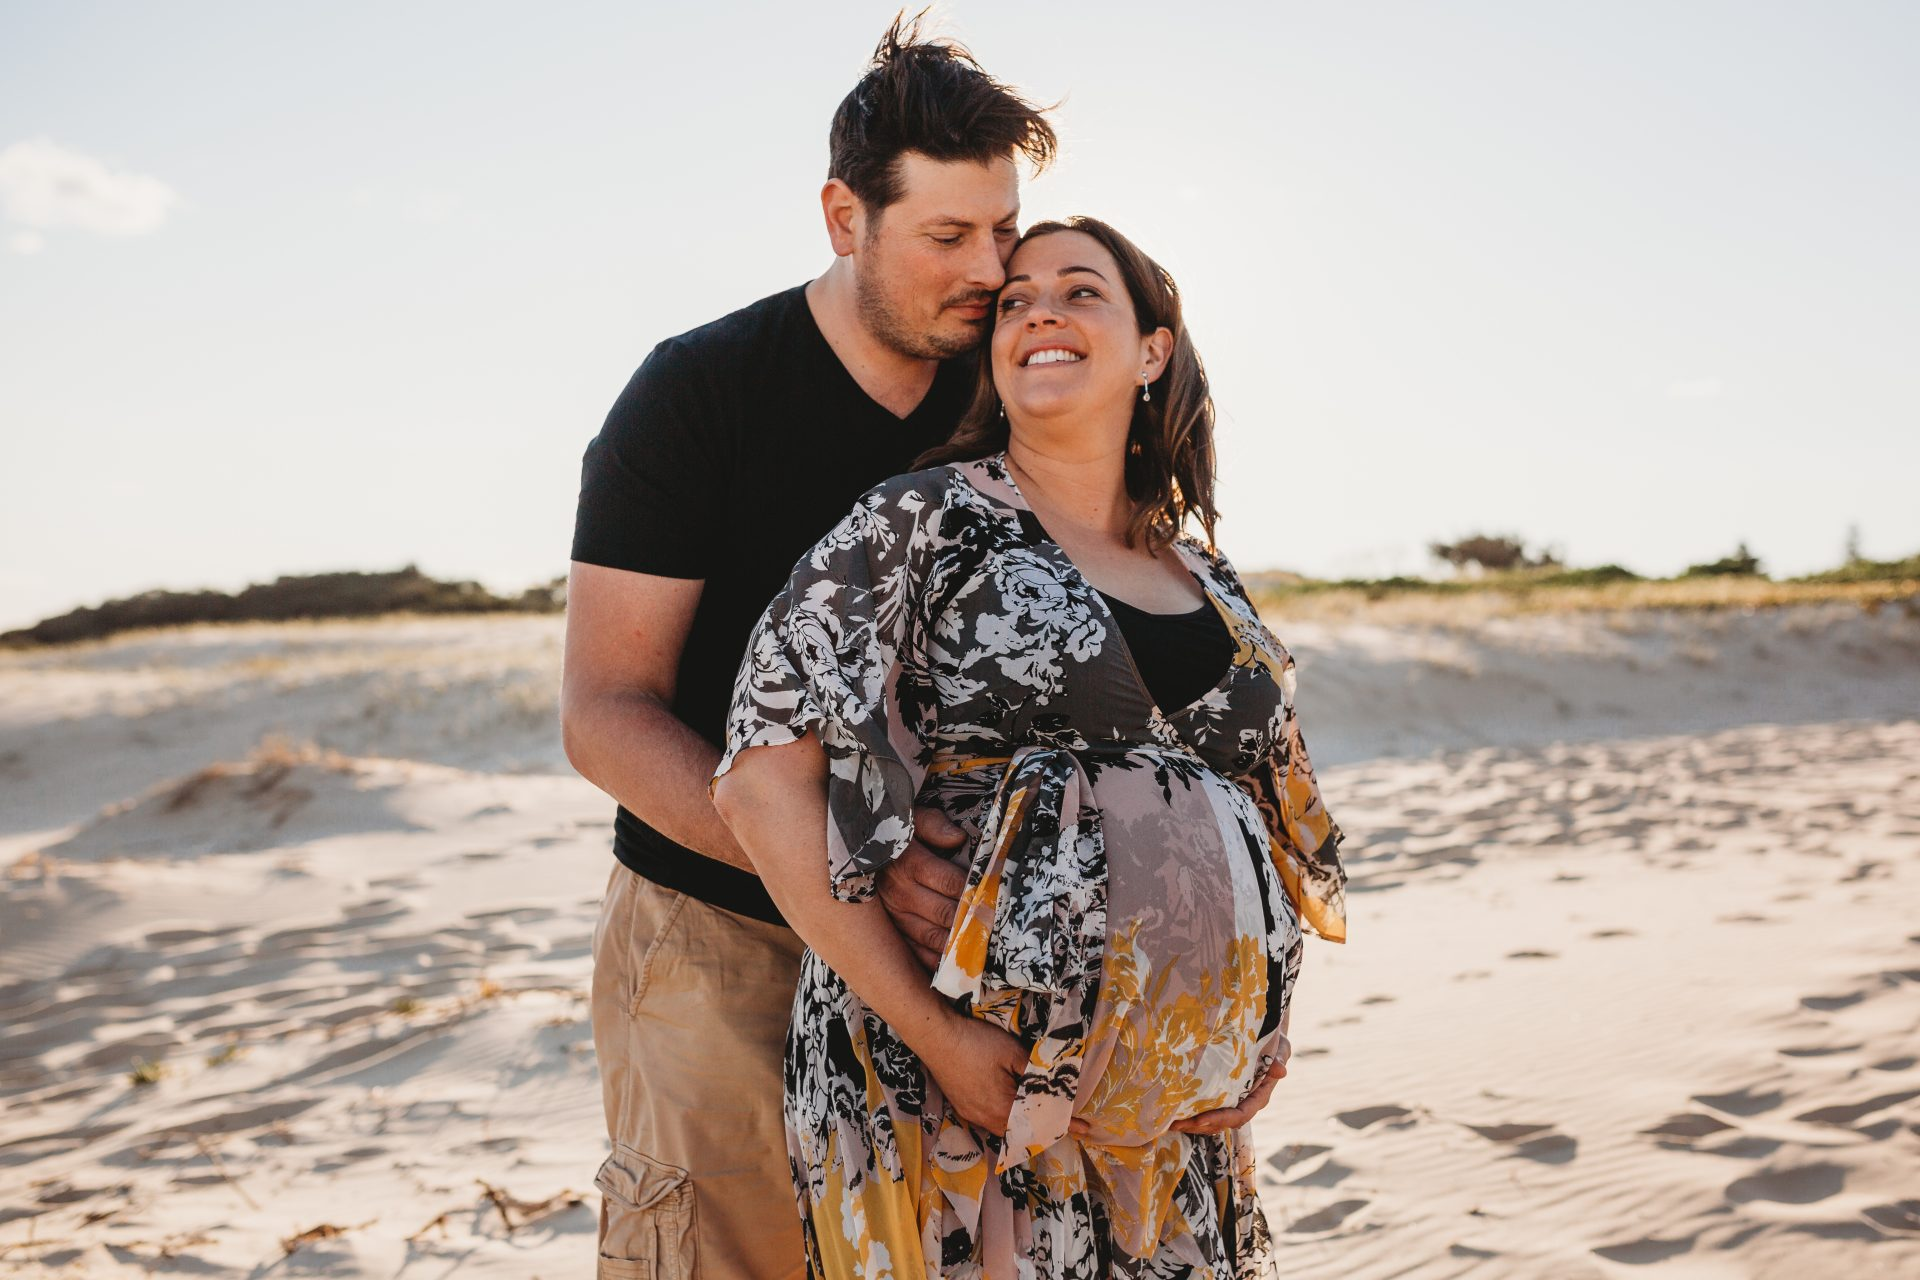 Pregnant woman standing in front of her husband smiling, as he cuddles her from behind